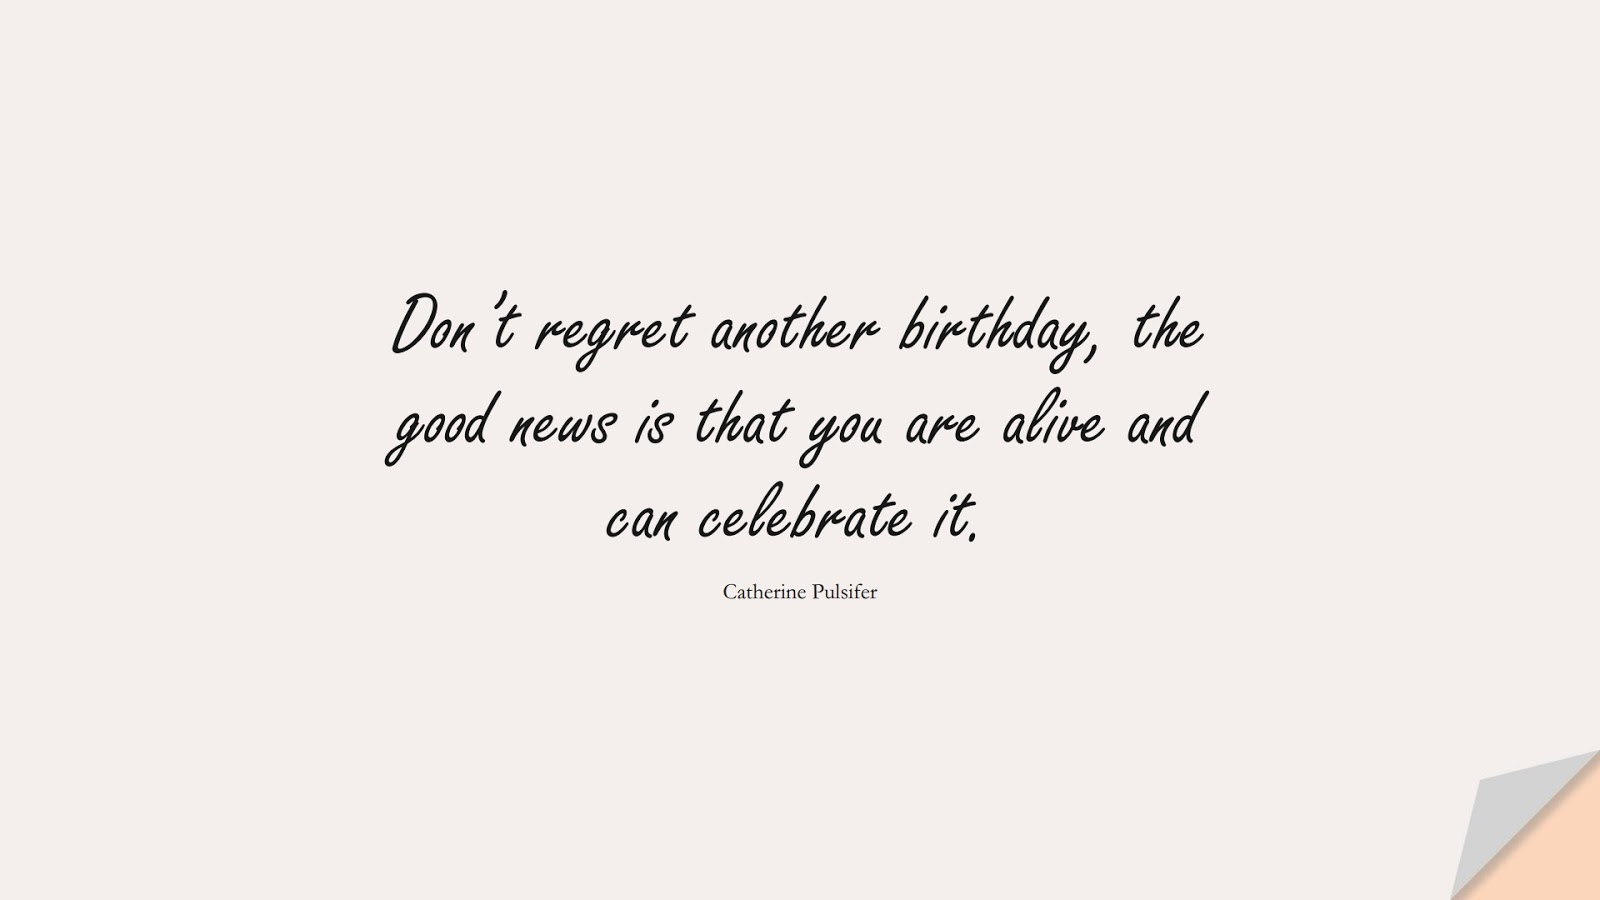 Don't regret another birthday, the good news is that you are alive and can celebrate it. (Catherine Pulsifer);  #BirthdayQuotes